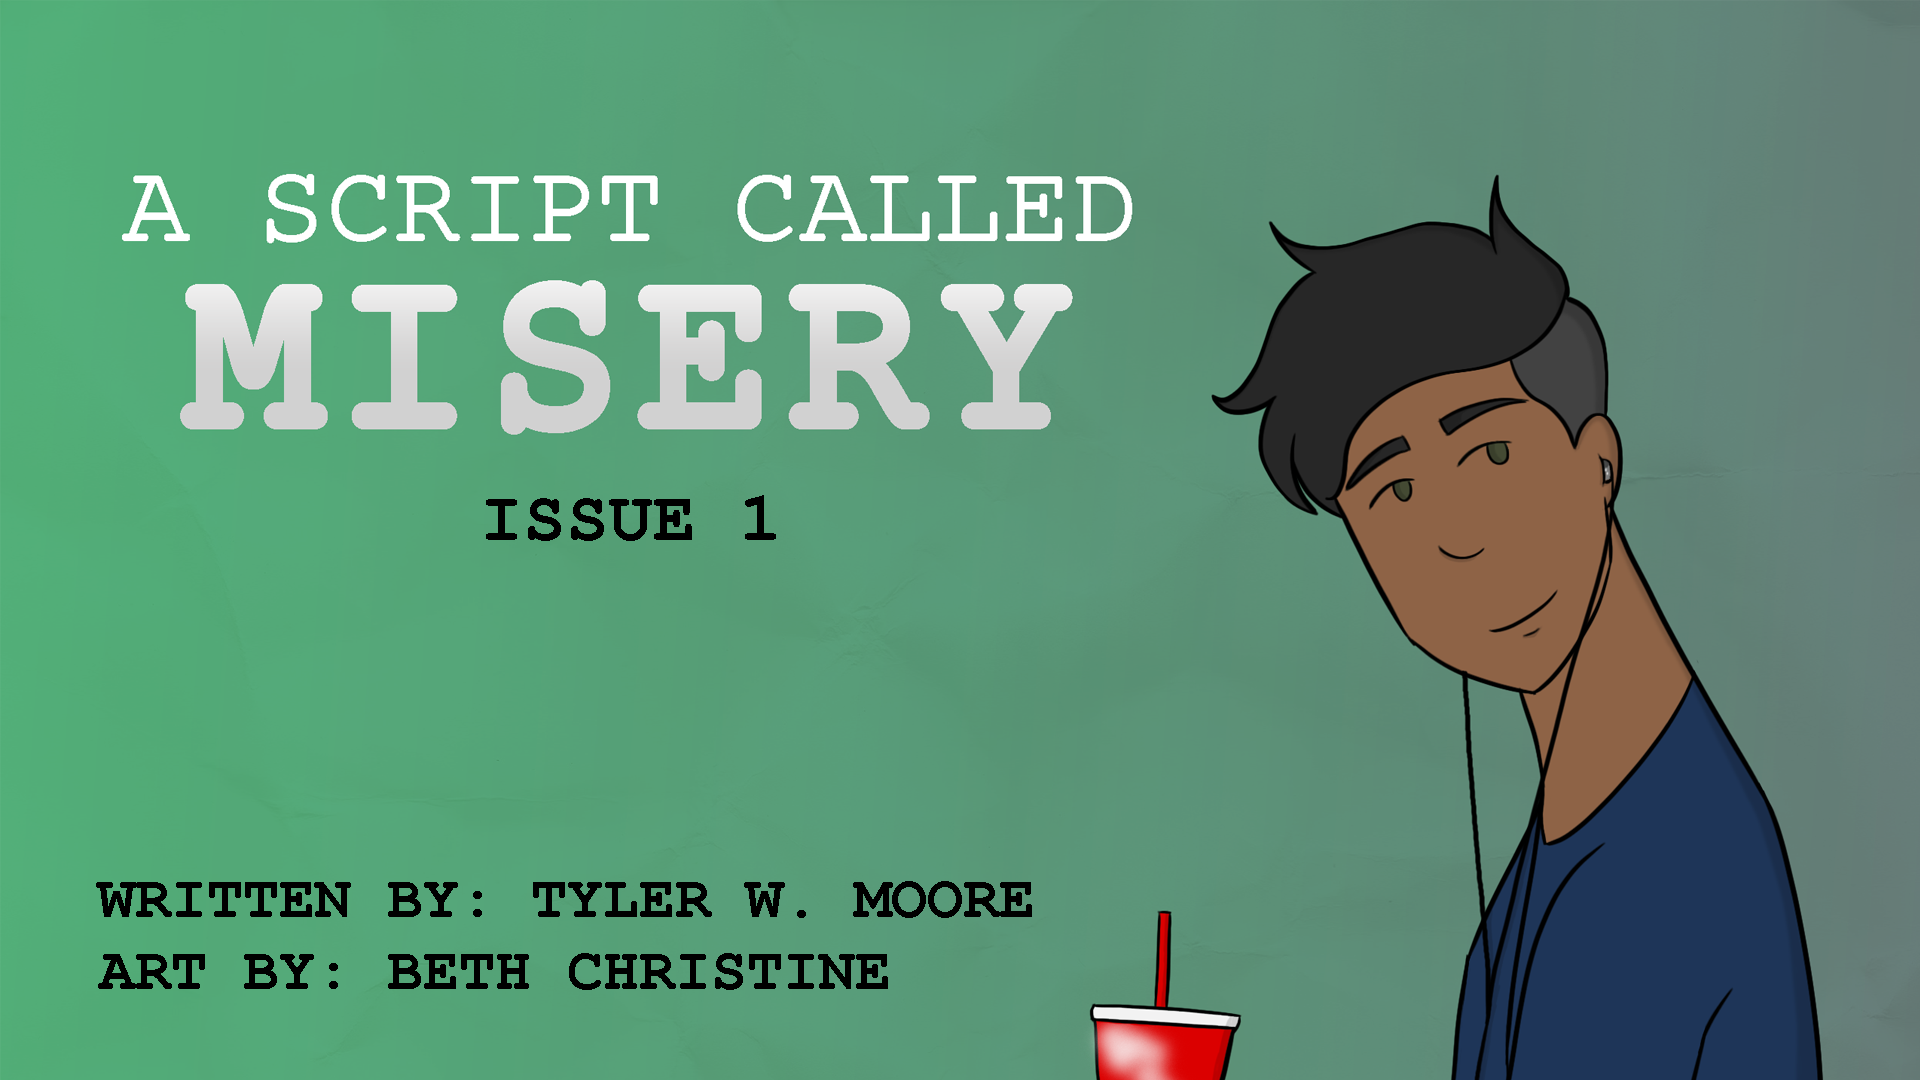 A SCRIPT CALLED MISERY: Issue #1